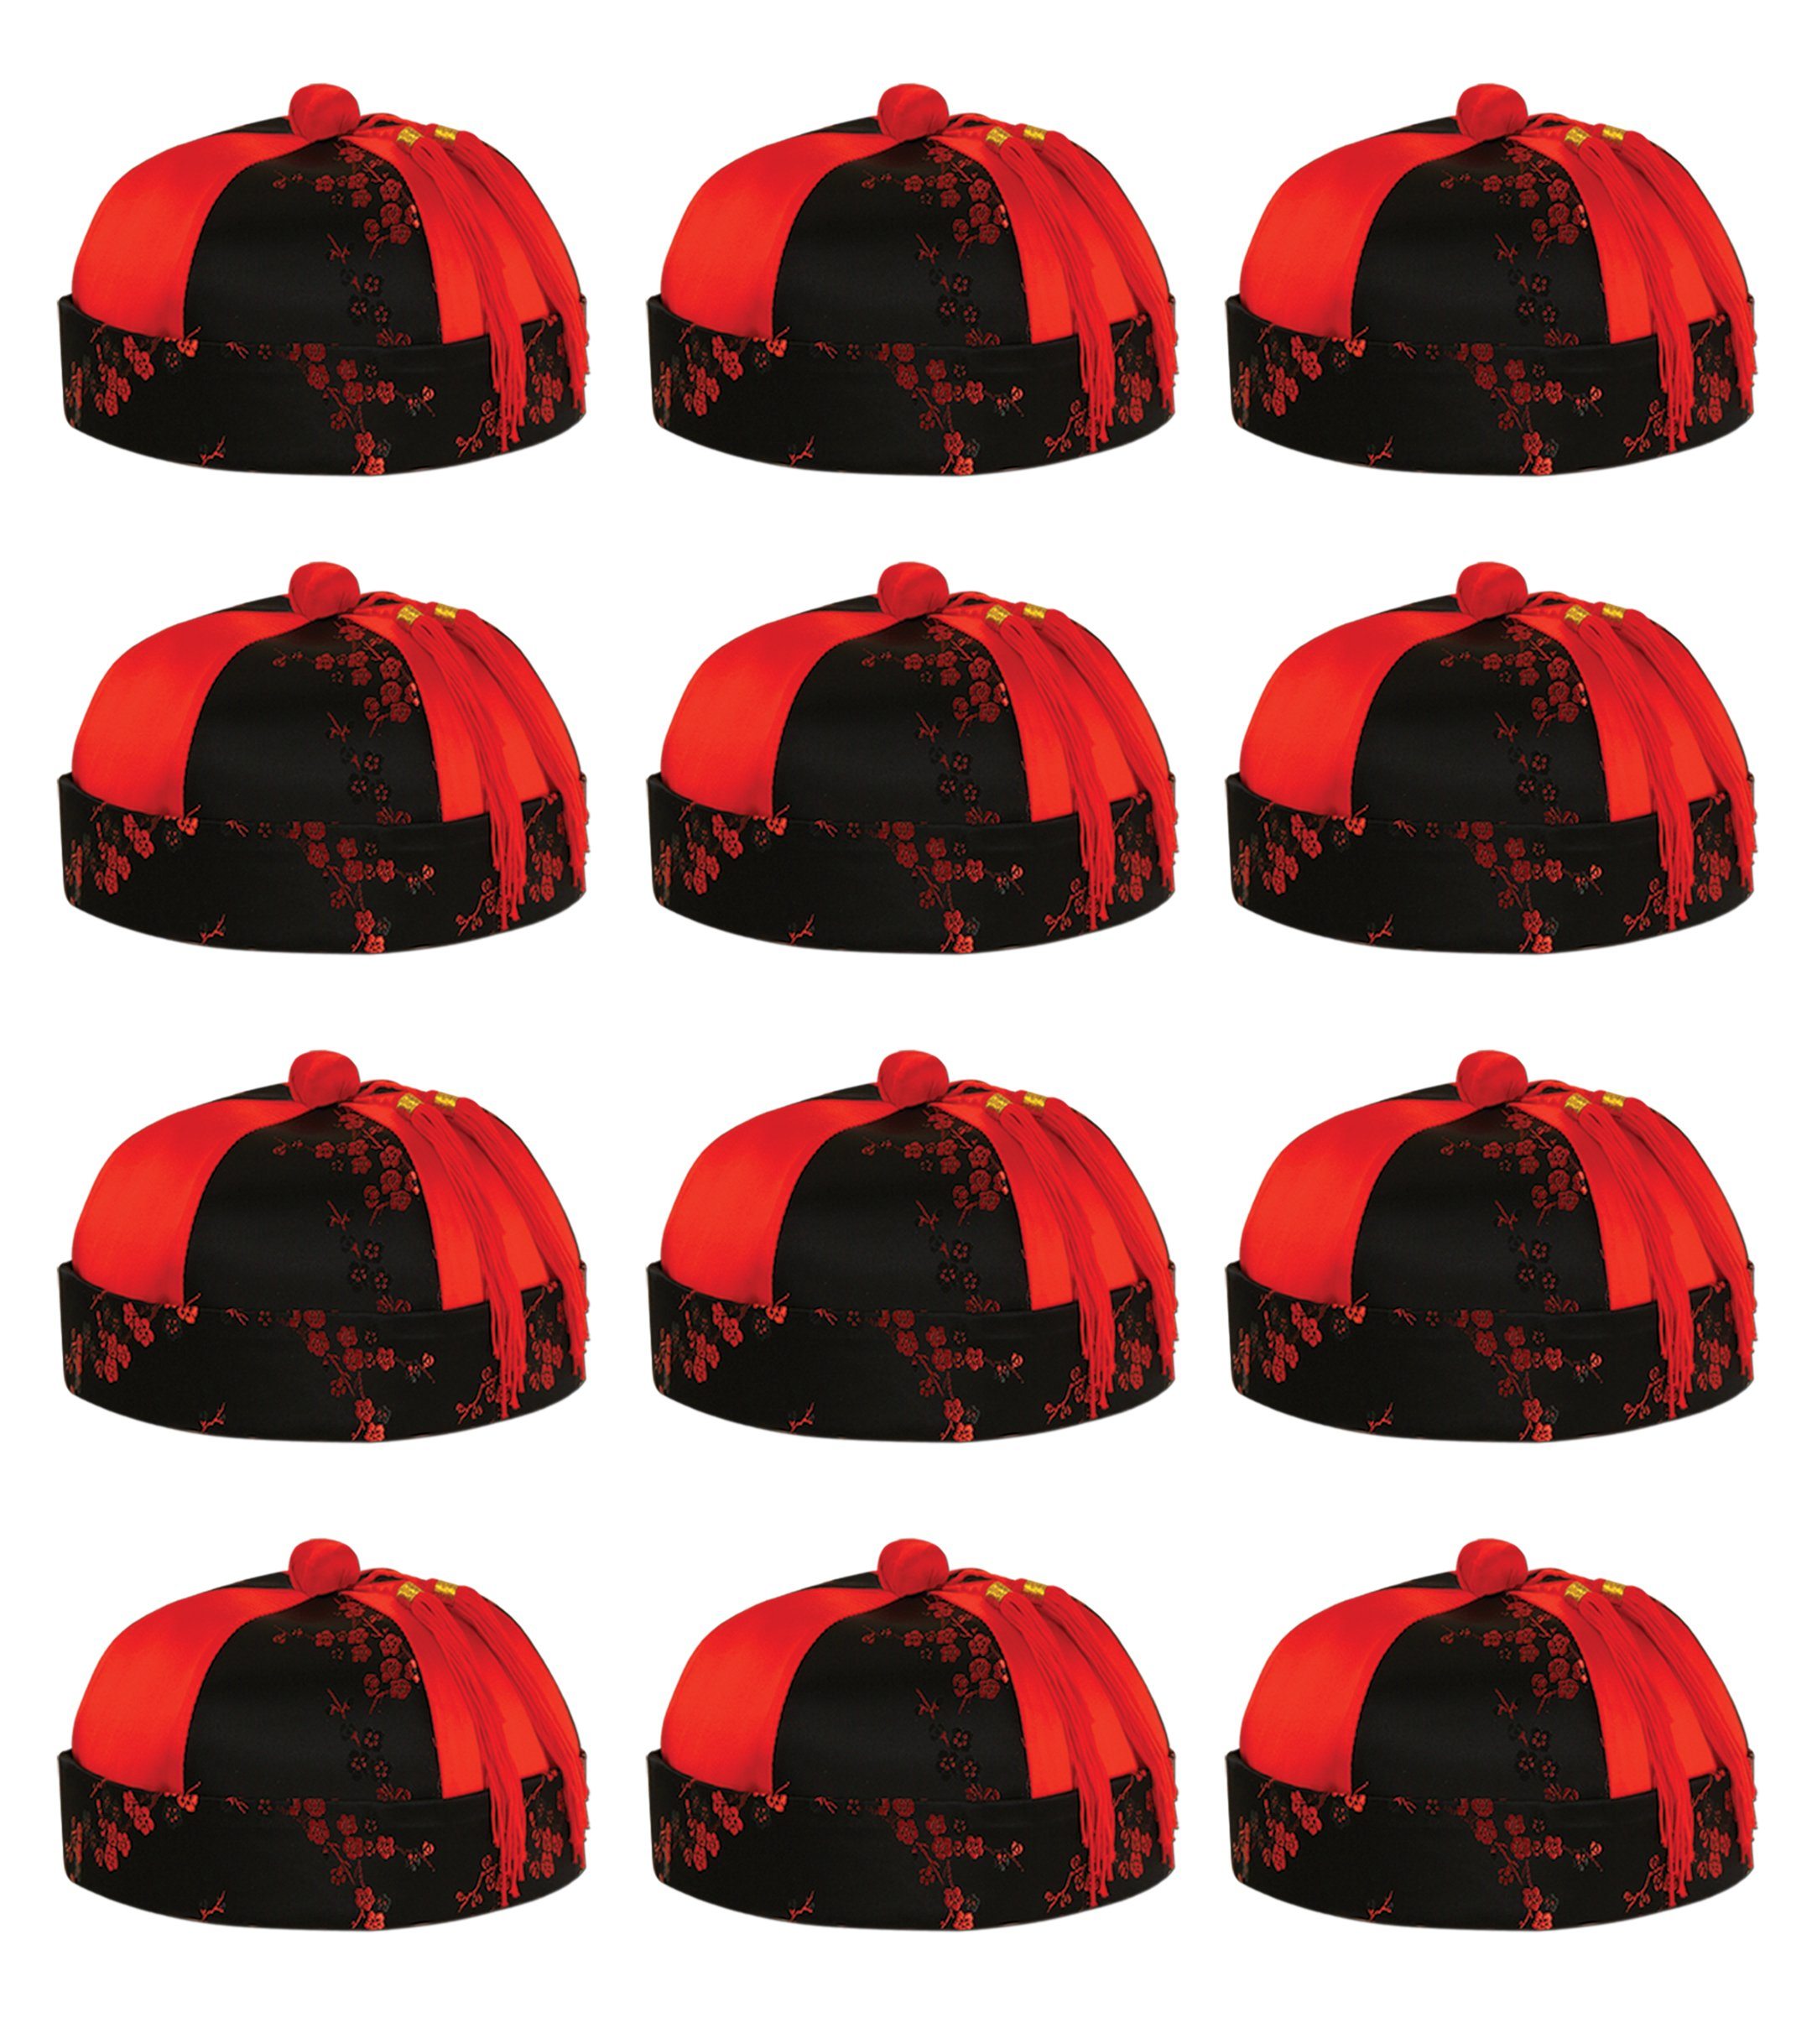 Beistle Mandarin Hat 1 Pack- 12 Pcs/Pack